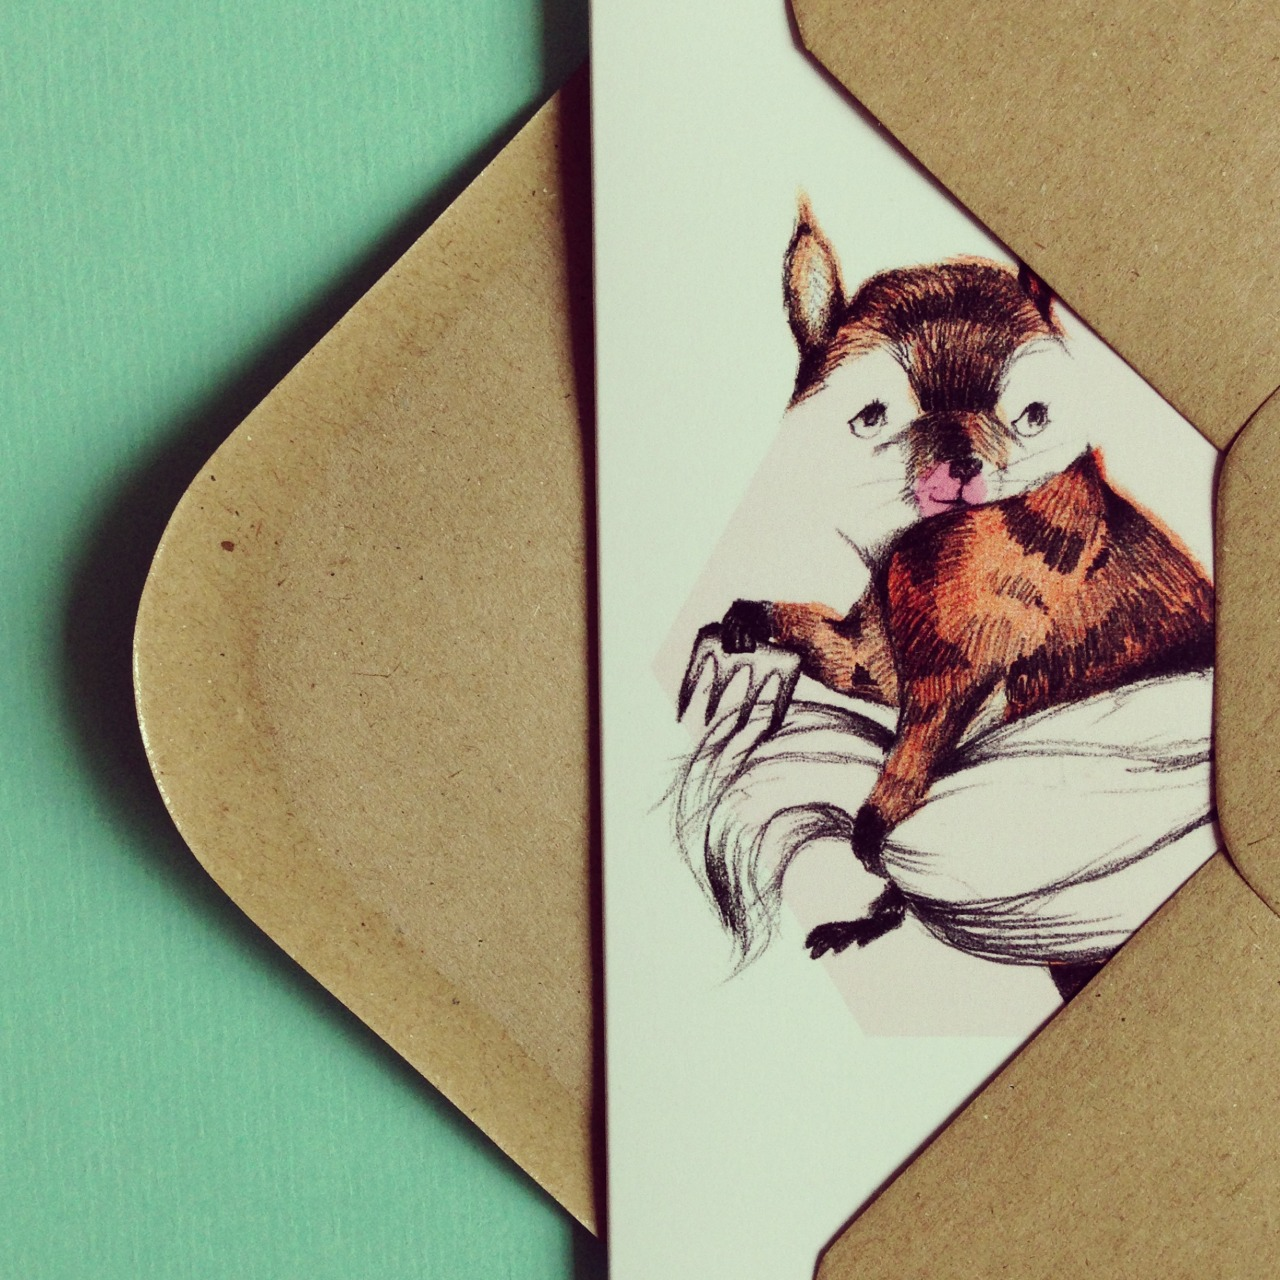 The shy squirrel card. https://www.etsy.com/listing/124774162/shy-squirrel-pencil-illustration